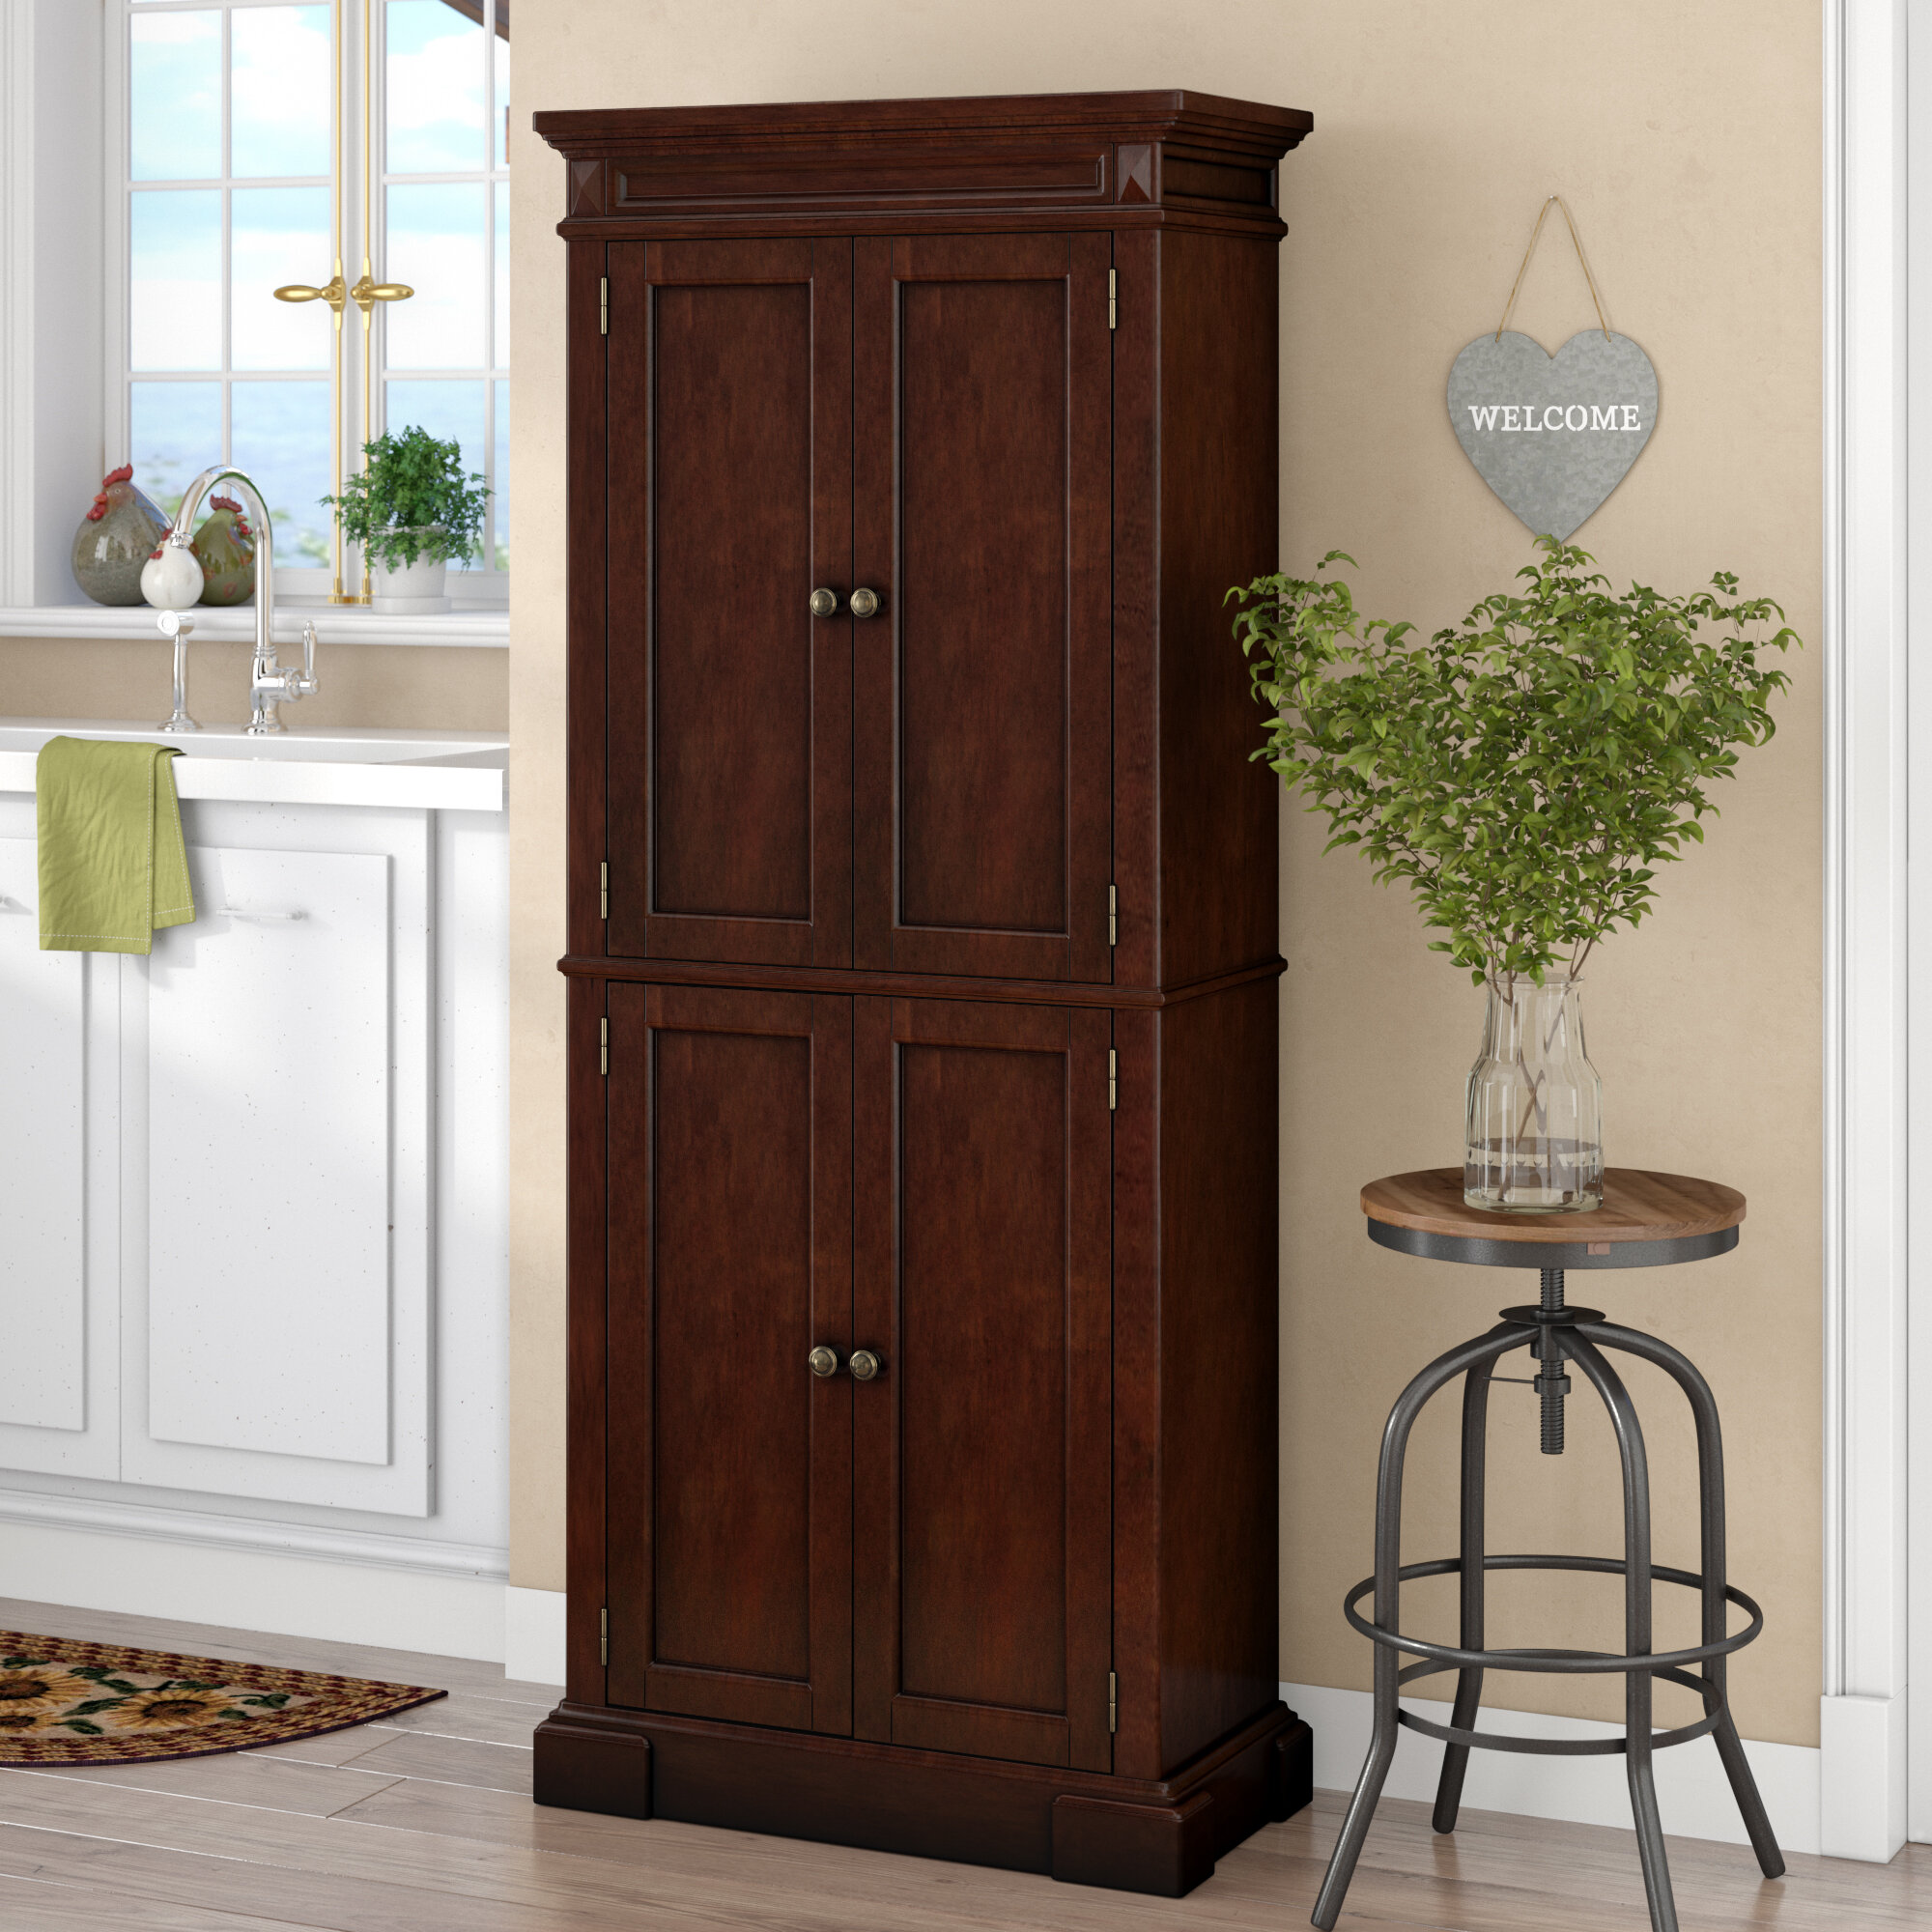 August Grove Collette 72 Kitchen Pantry Reviews Wayfair